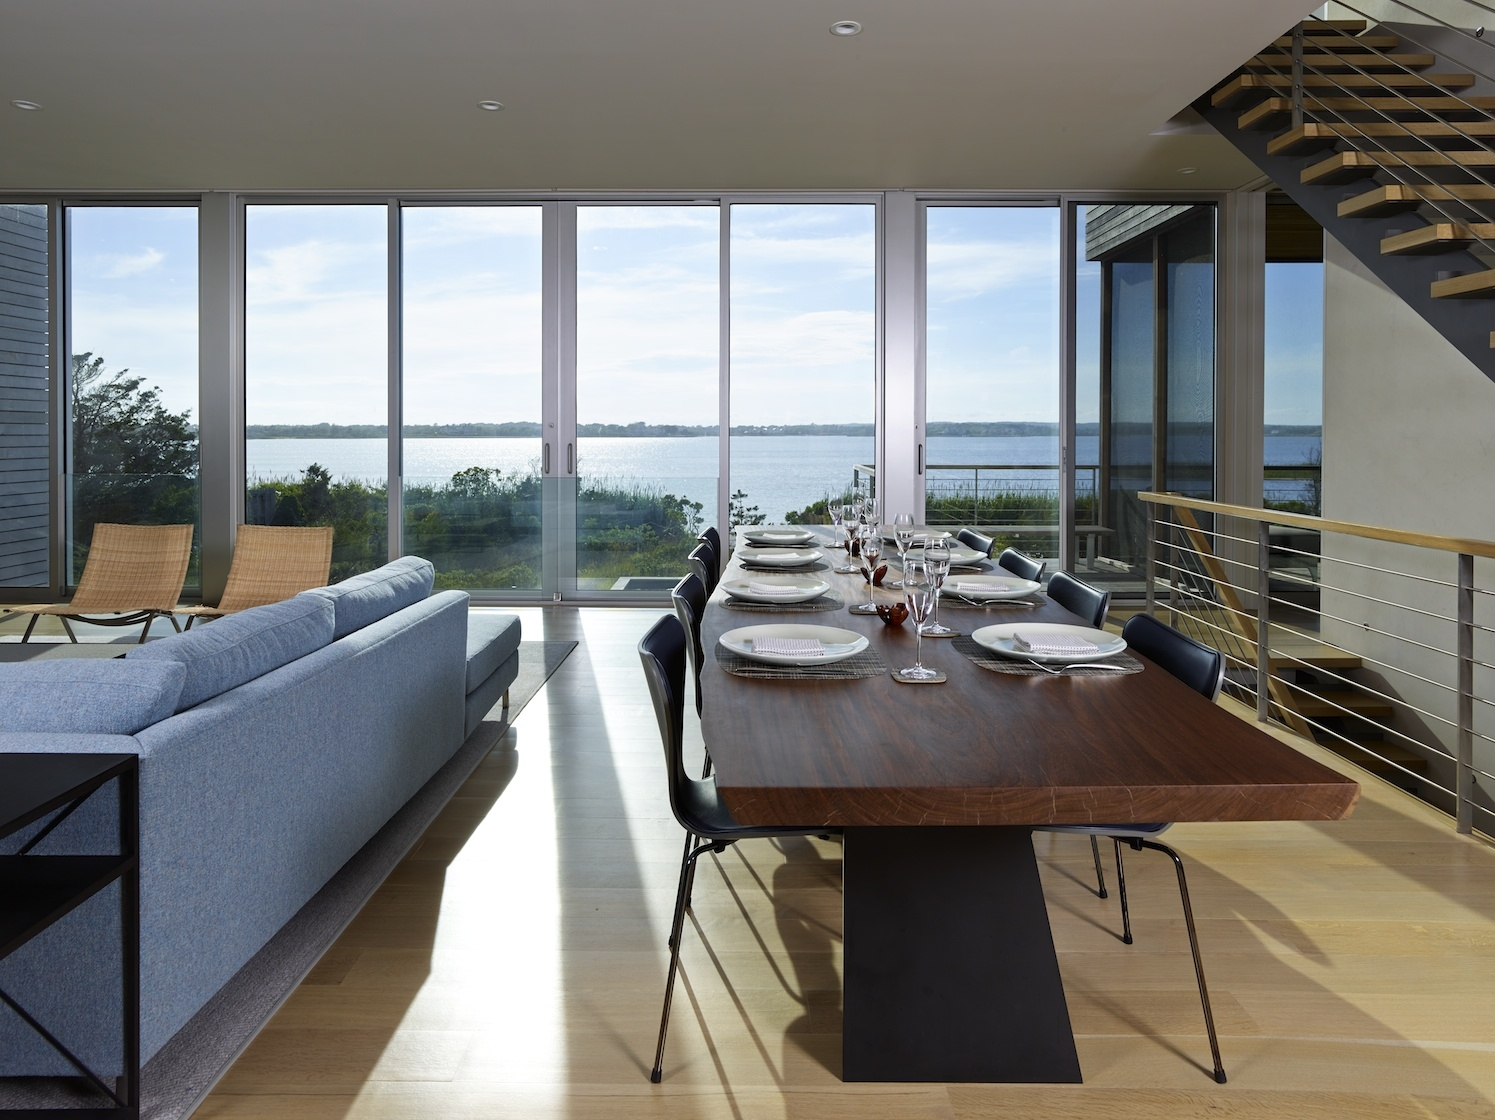 Cove Residence Interiors Stelle Lomont Rouhani